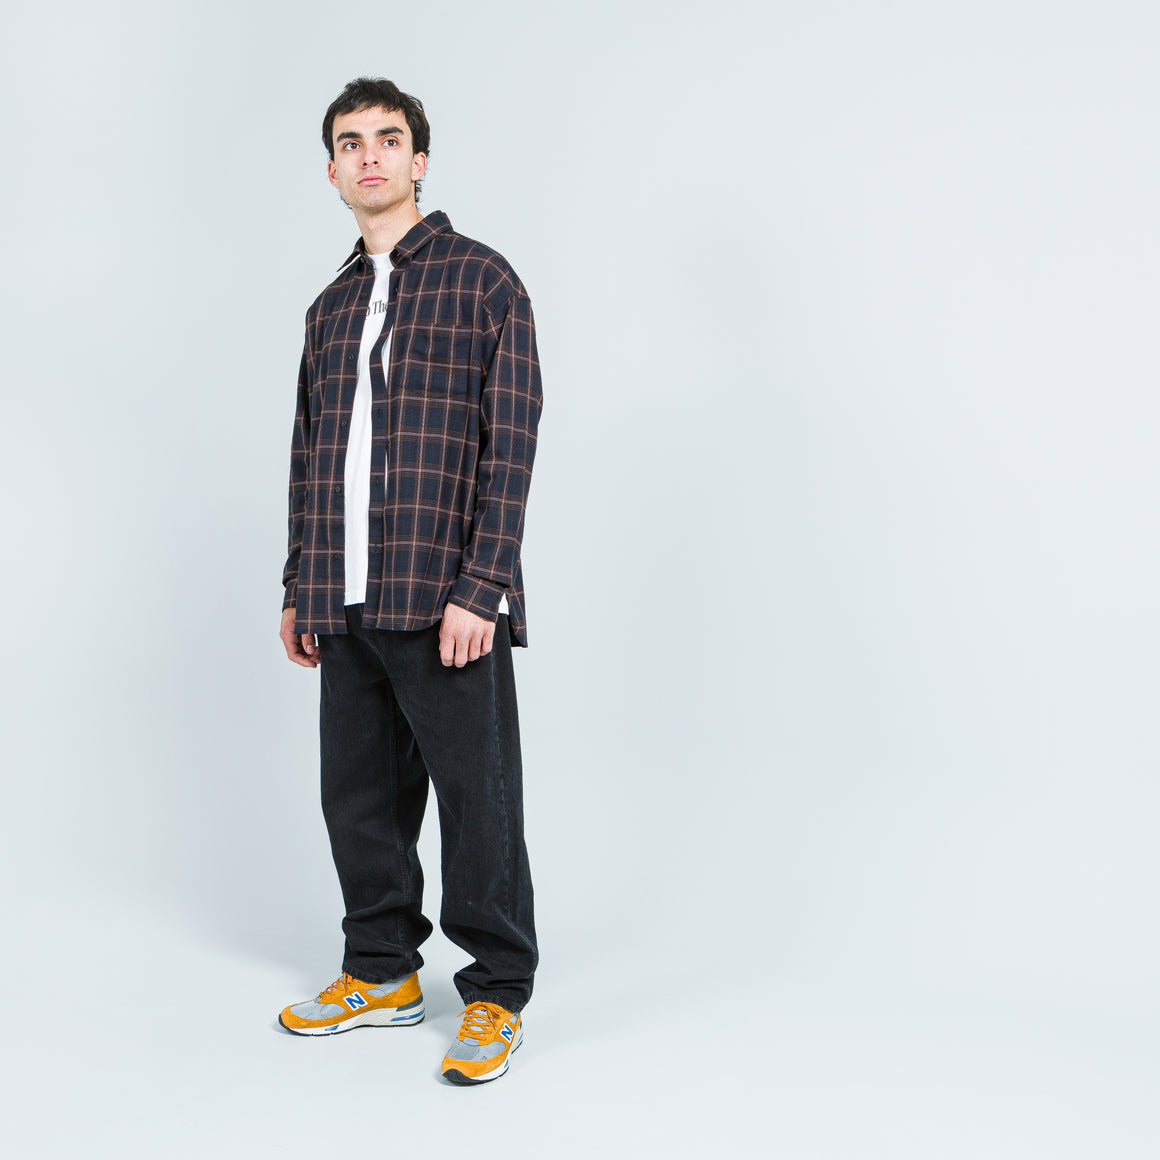 N. Hoolywood - Mismatch Shirt - BR Check - Up There